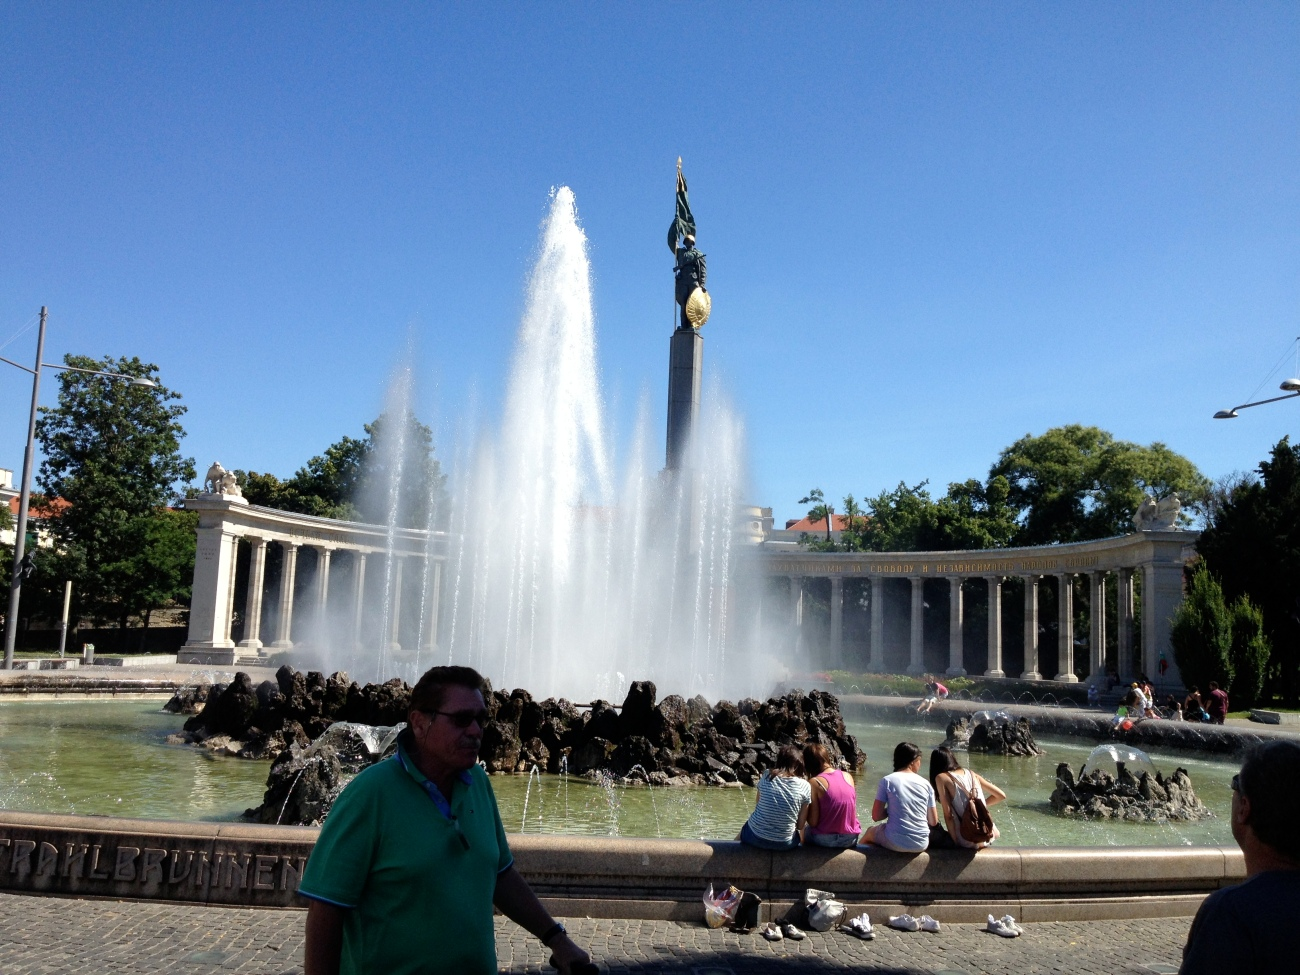 Walter telling half the bike riders about the fountain.